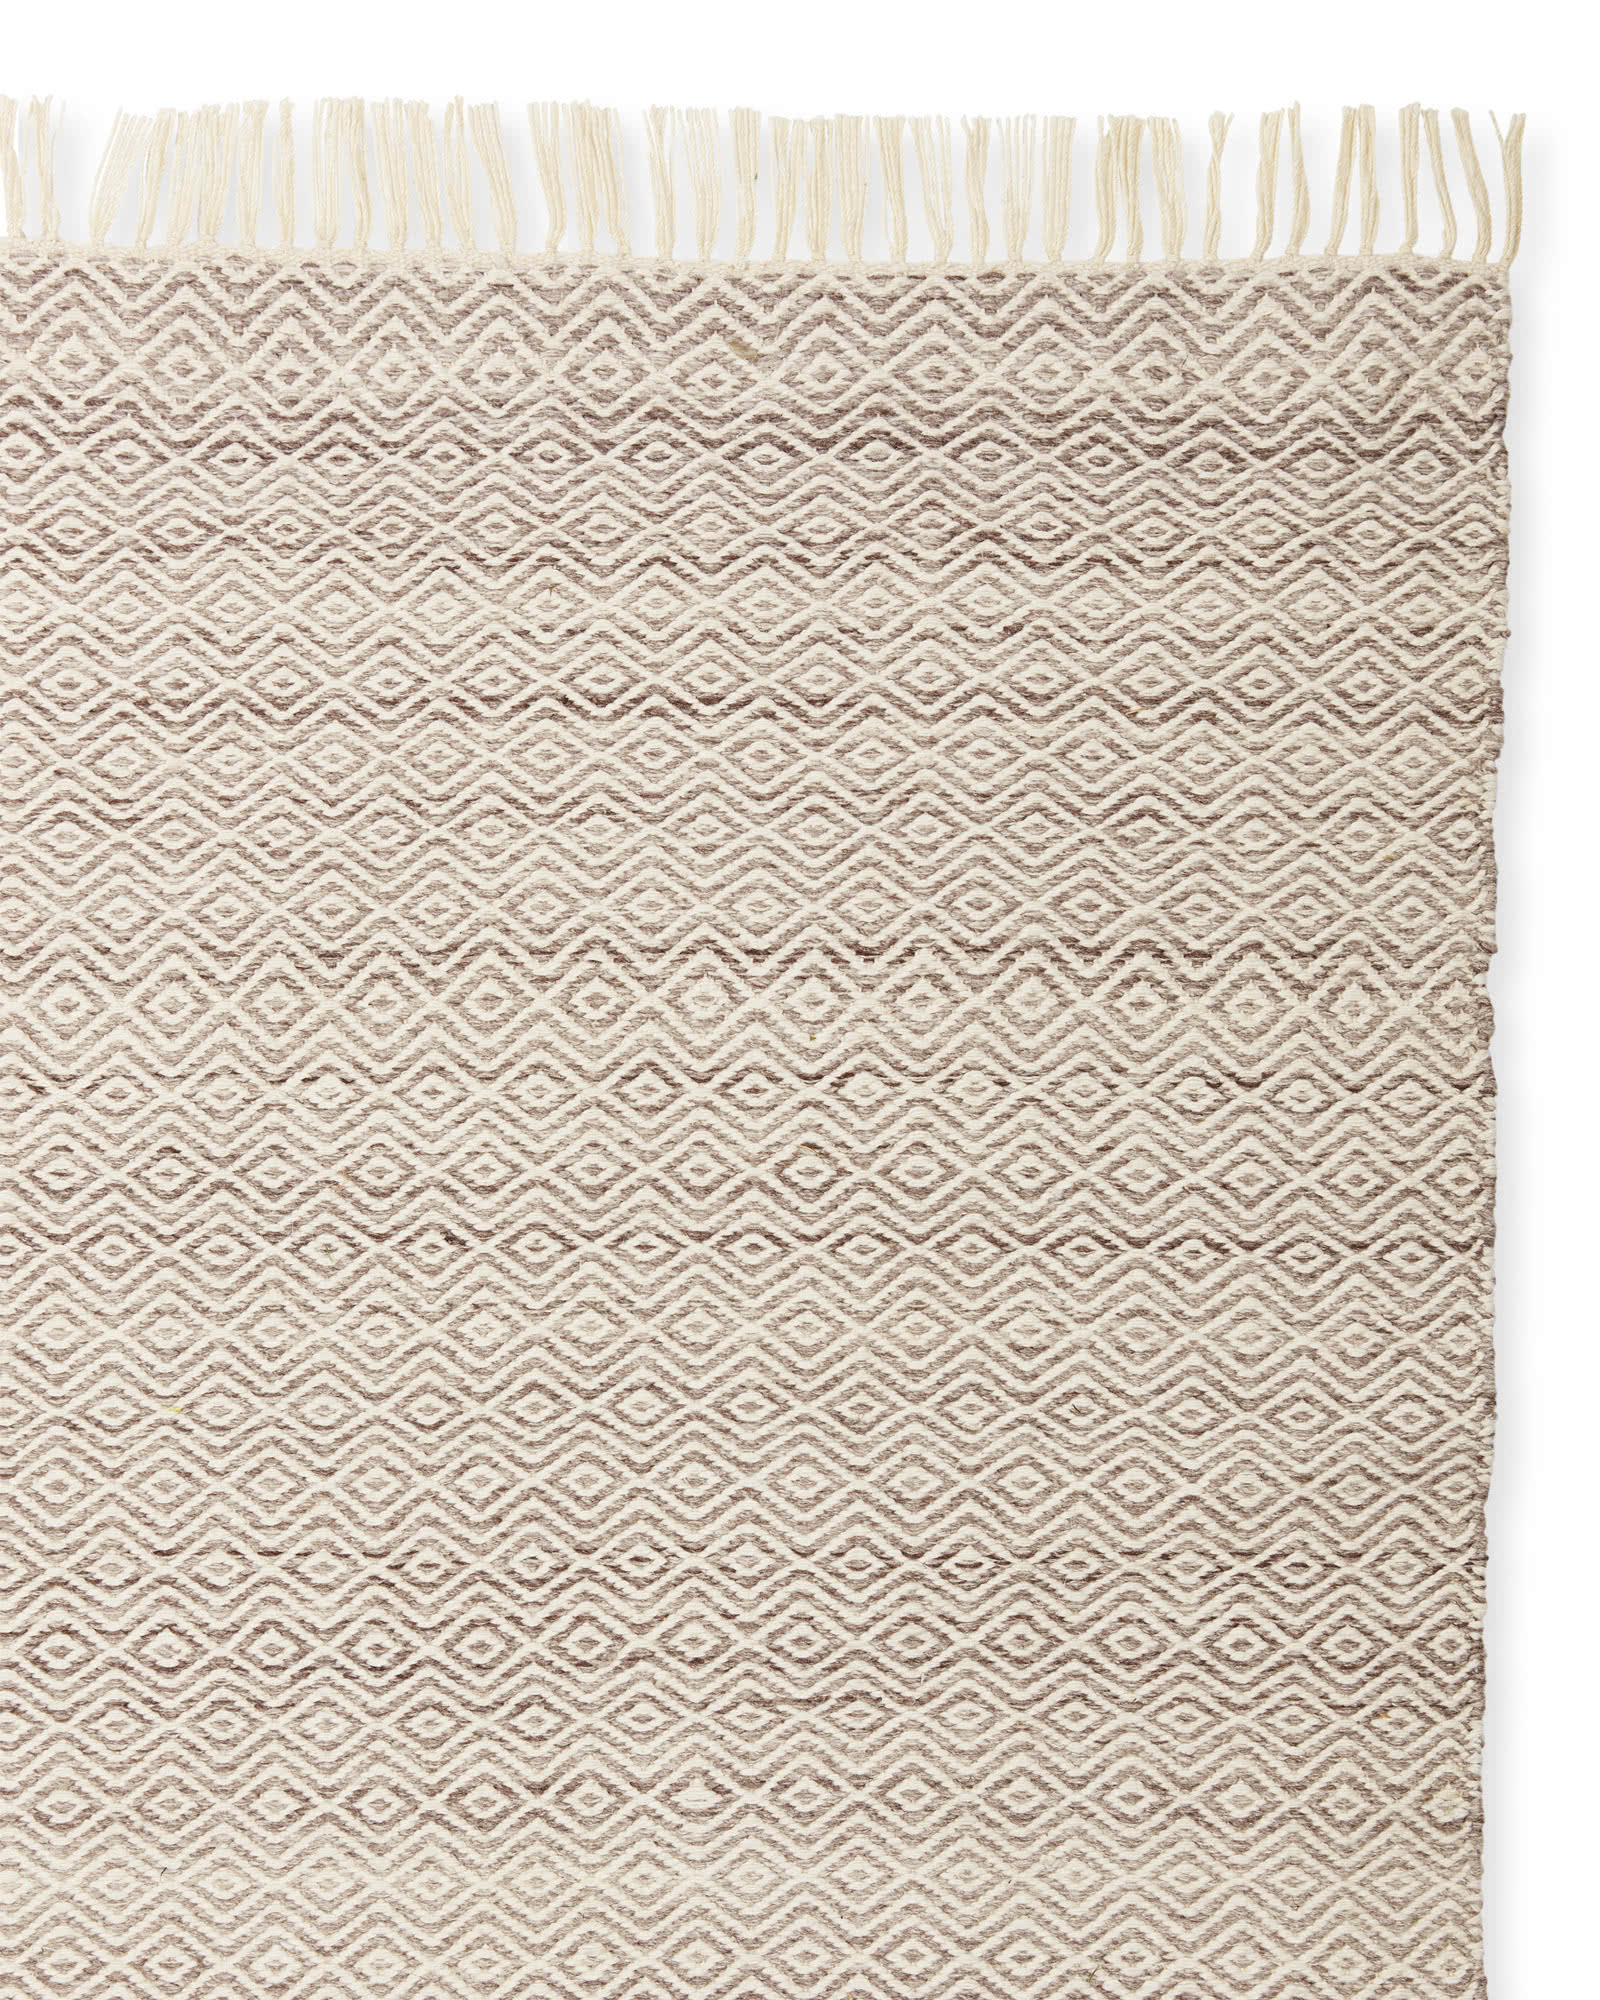 Seaview Rug, Earth